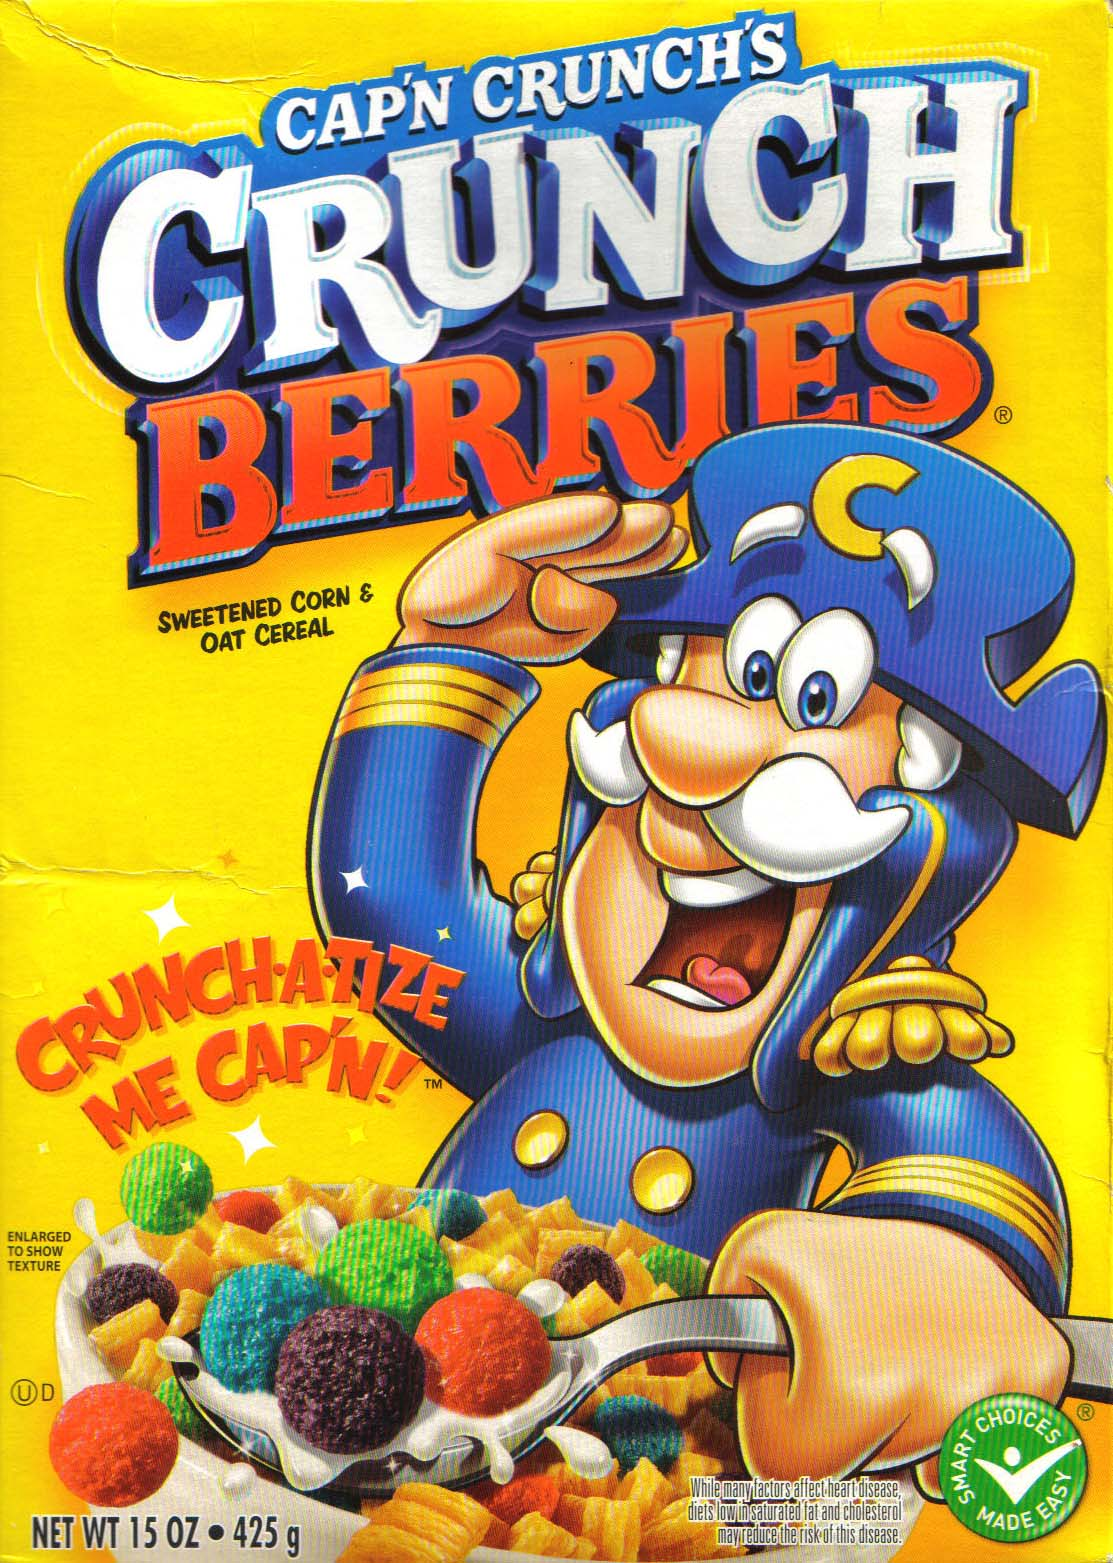 Which Cereal Mascot Would You Most Want To Have a Drink